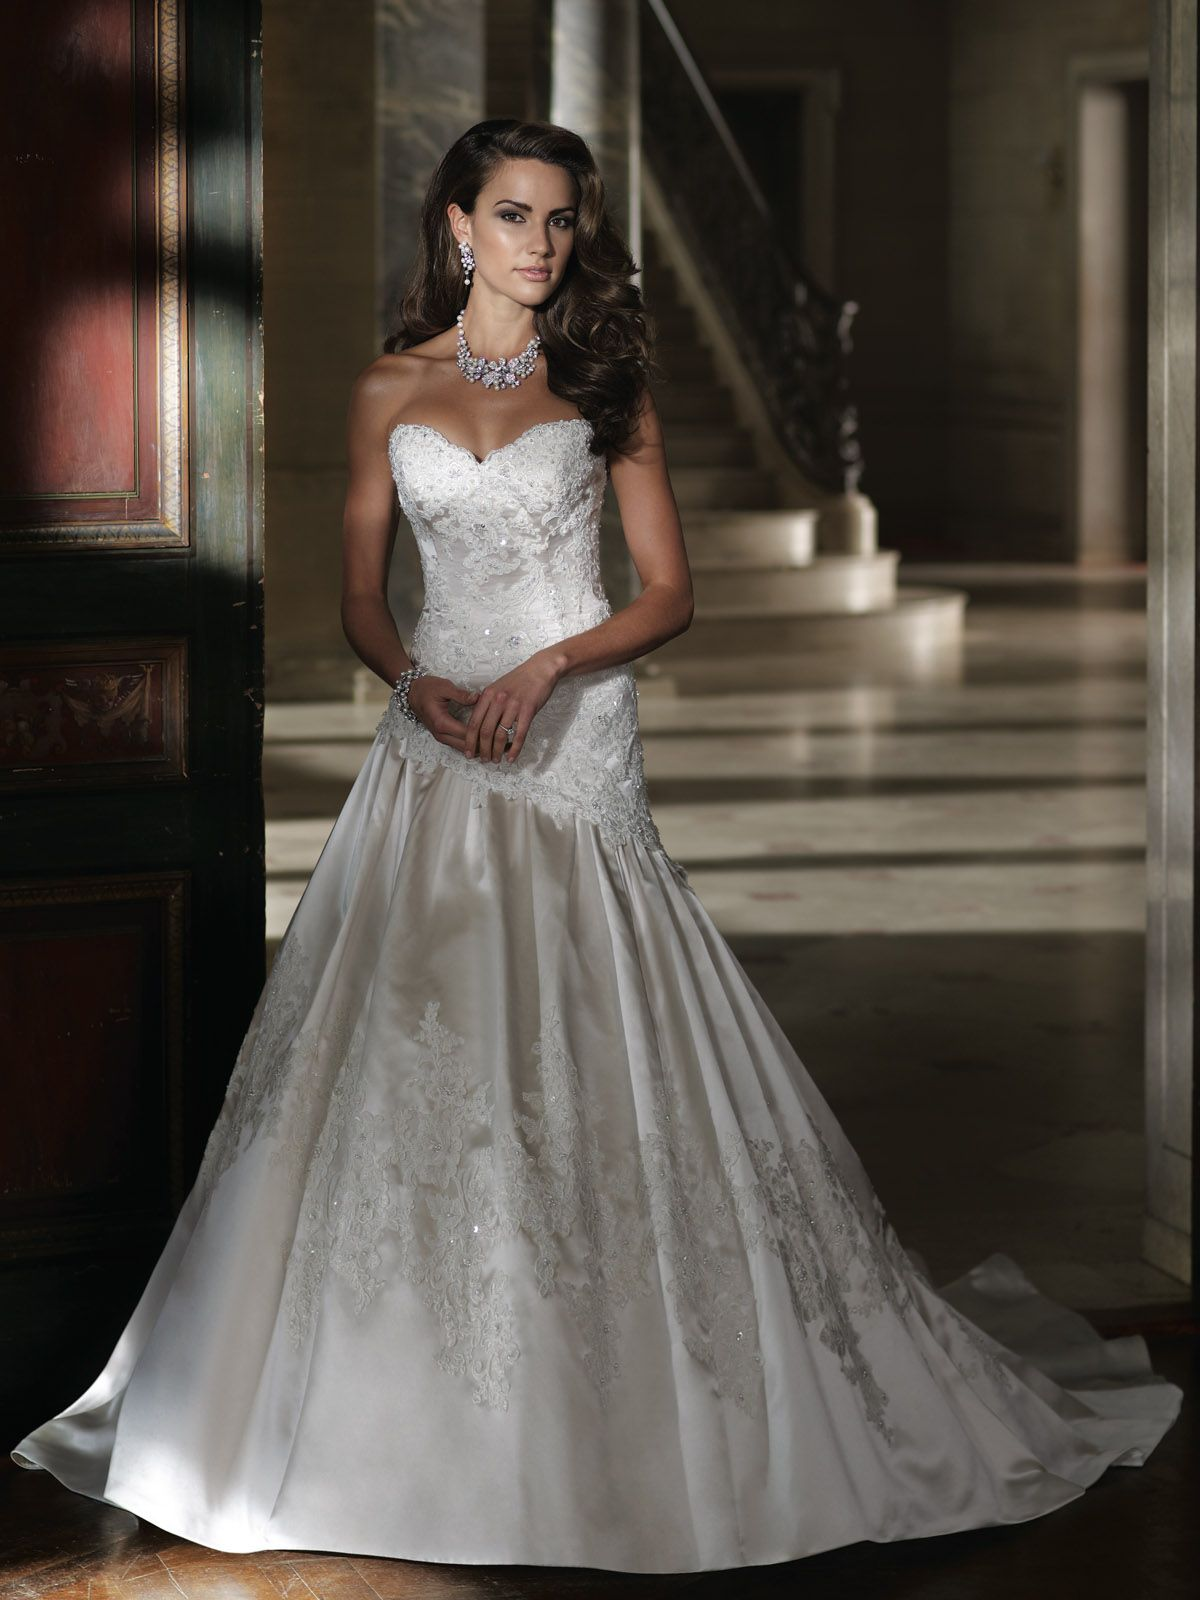 David Tutera Strapless Luxurious Satin And Lace Appliqu Modified A Line Wedding Dress With Sweetheart Neckline